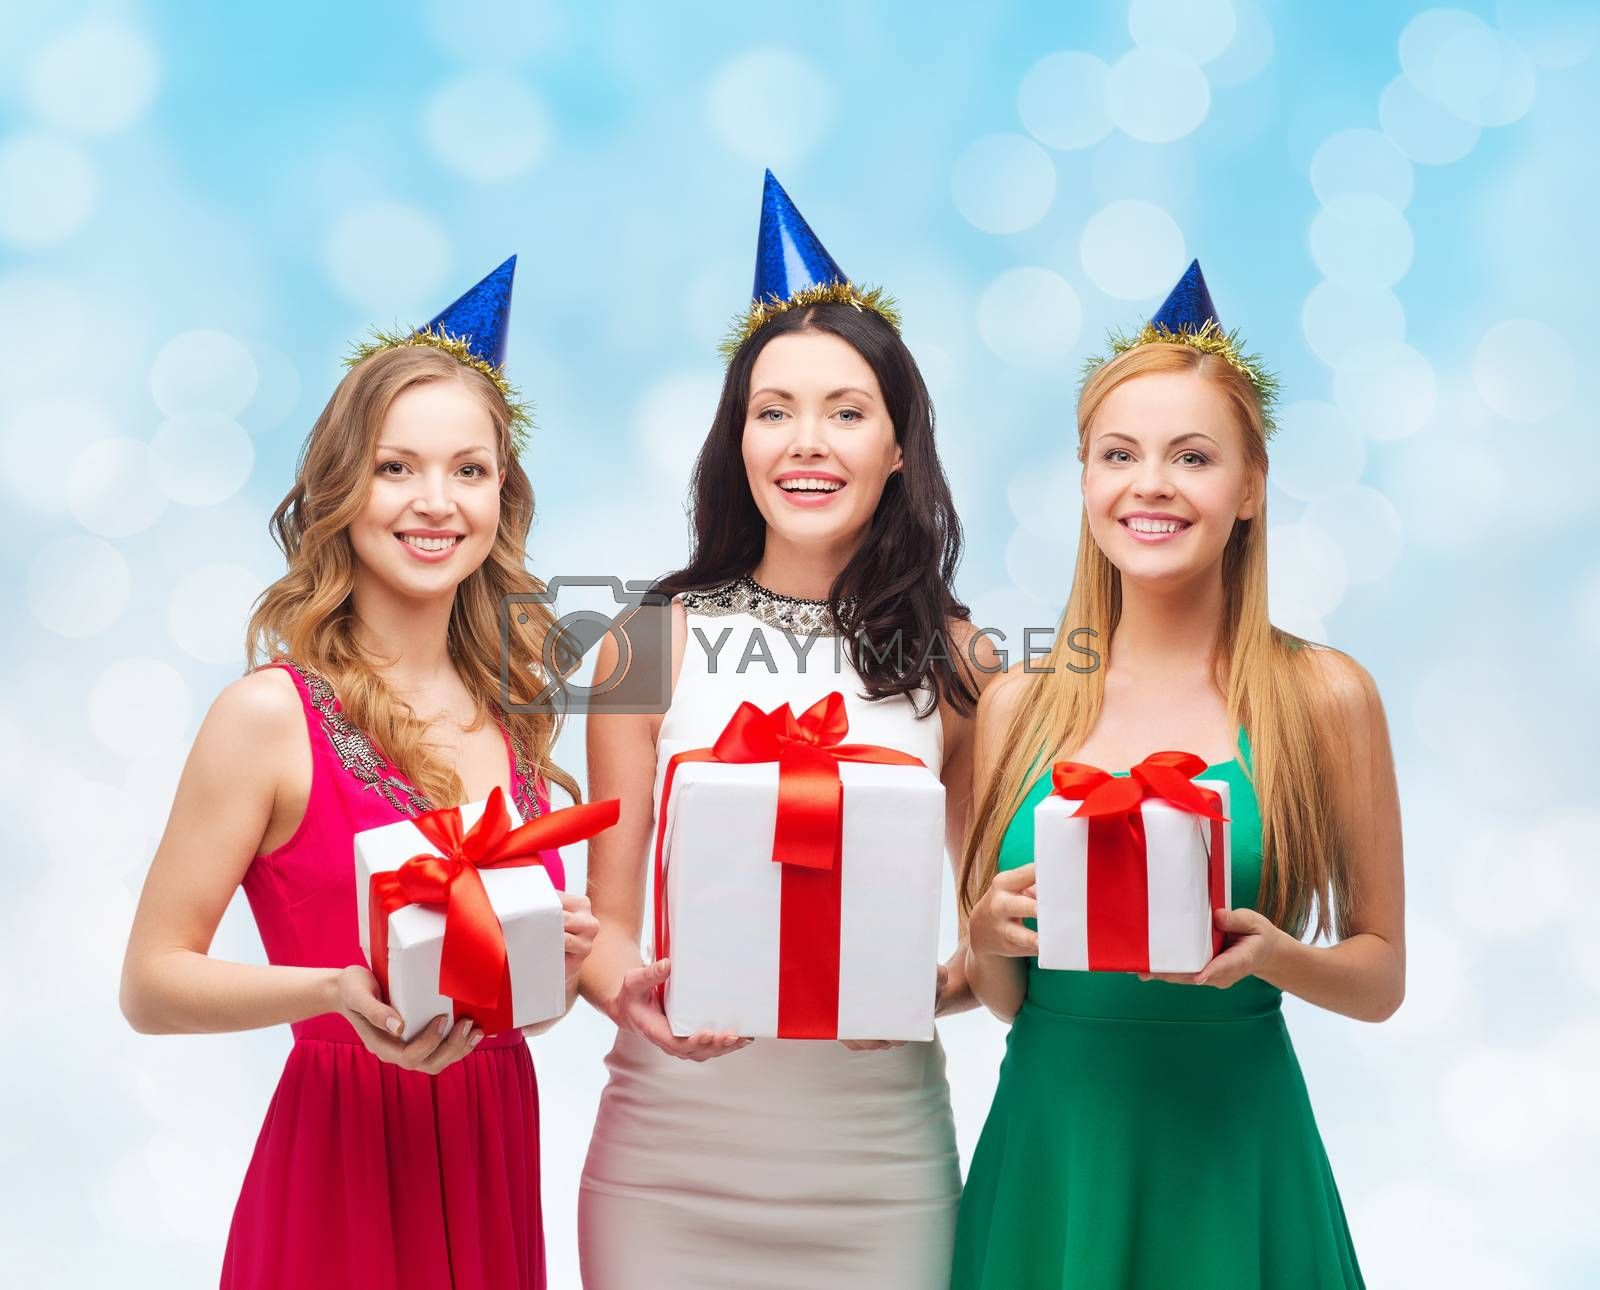 presents, holidays, people and celebration concept - smiling women in party caps with gift boxes over blue lights background